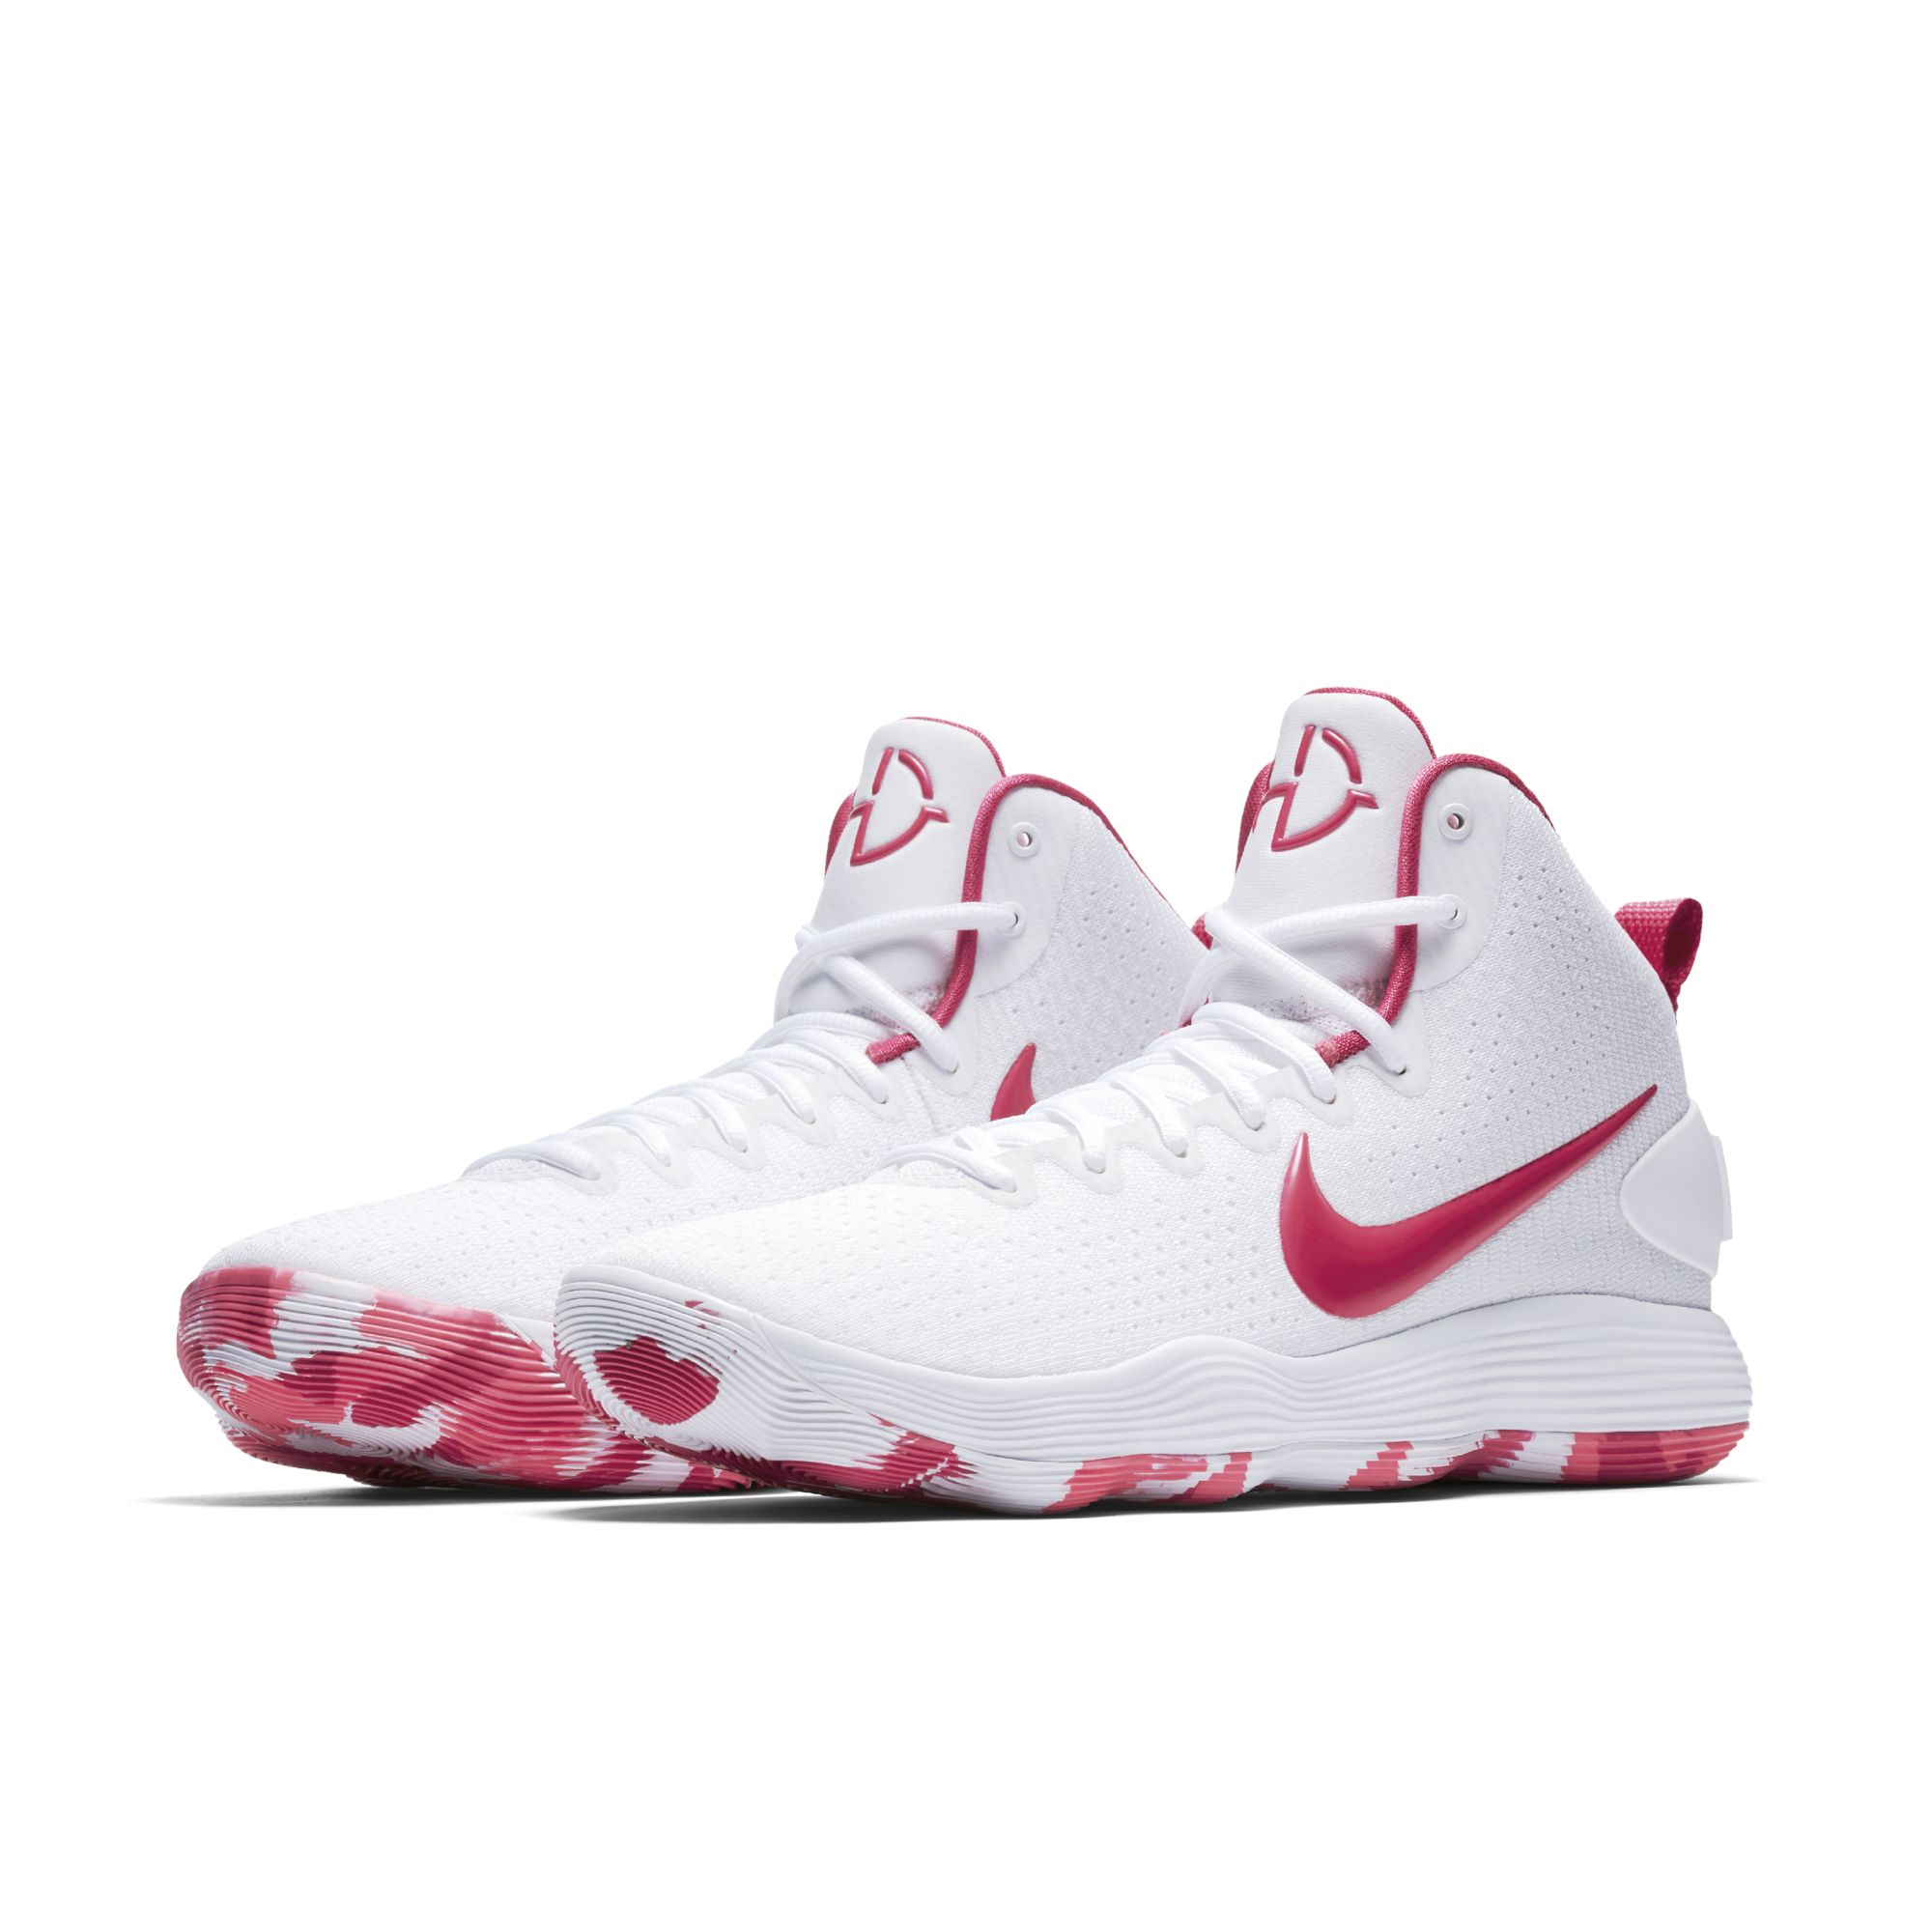 Cancer Awareness Basketball Shoes